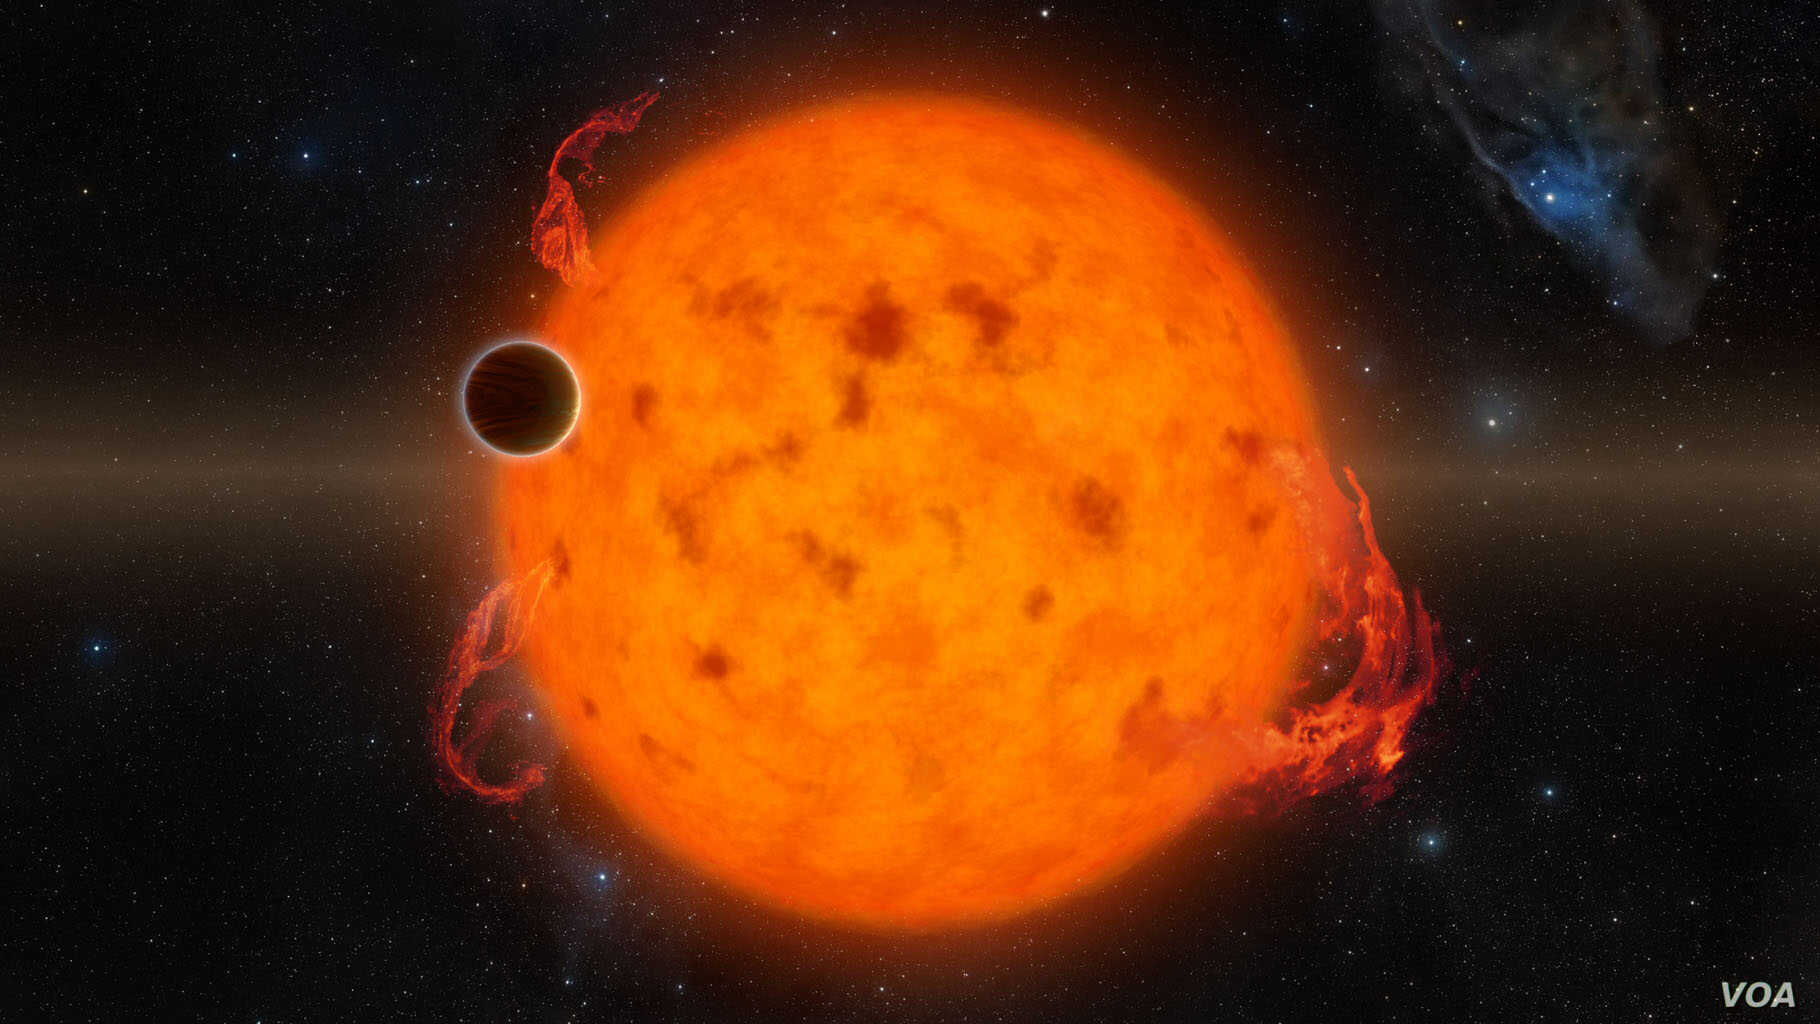 K2-33b, shown in this illustration, is one of the youngest exoplanets detected to date using NASA's Kepler Space Telescope.  K2-33b, shown in this illustration, is one of the youngest exoplanets detected to date. It makes a complete orbit around its